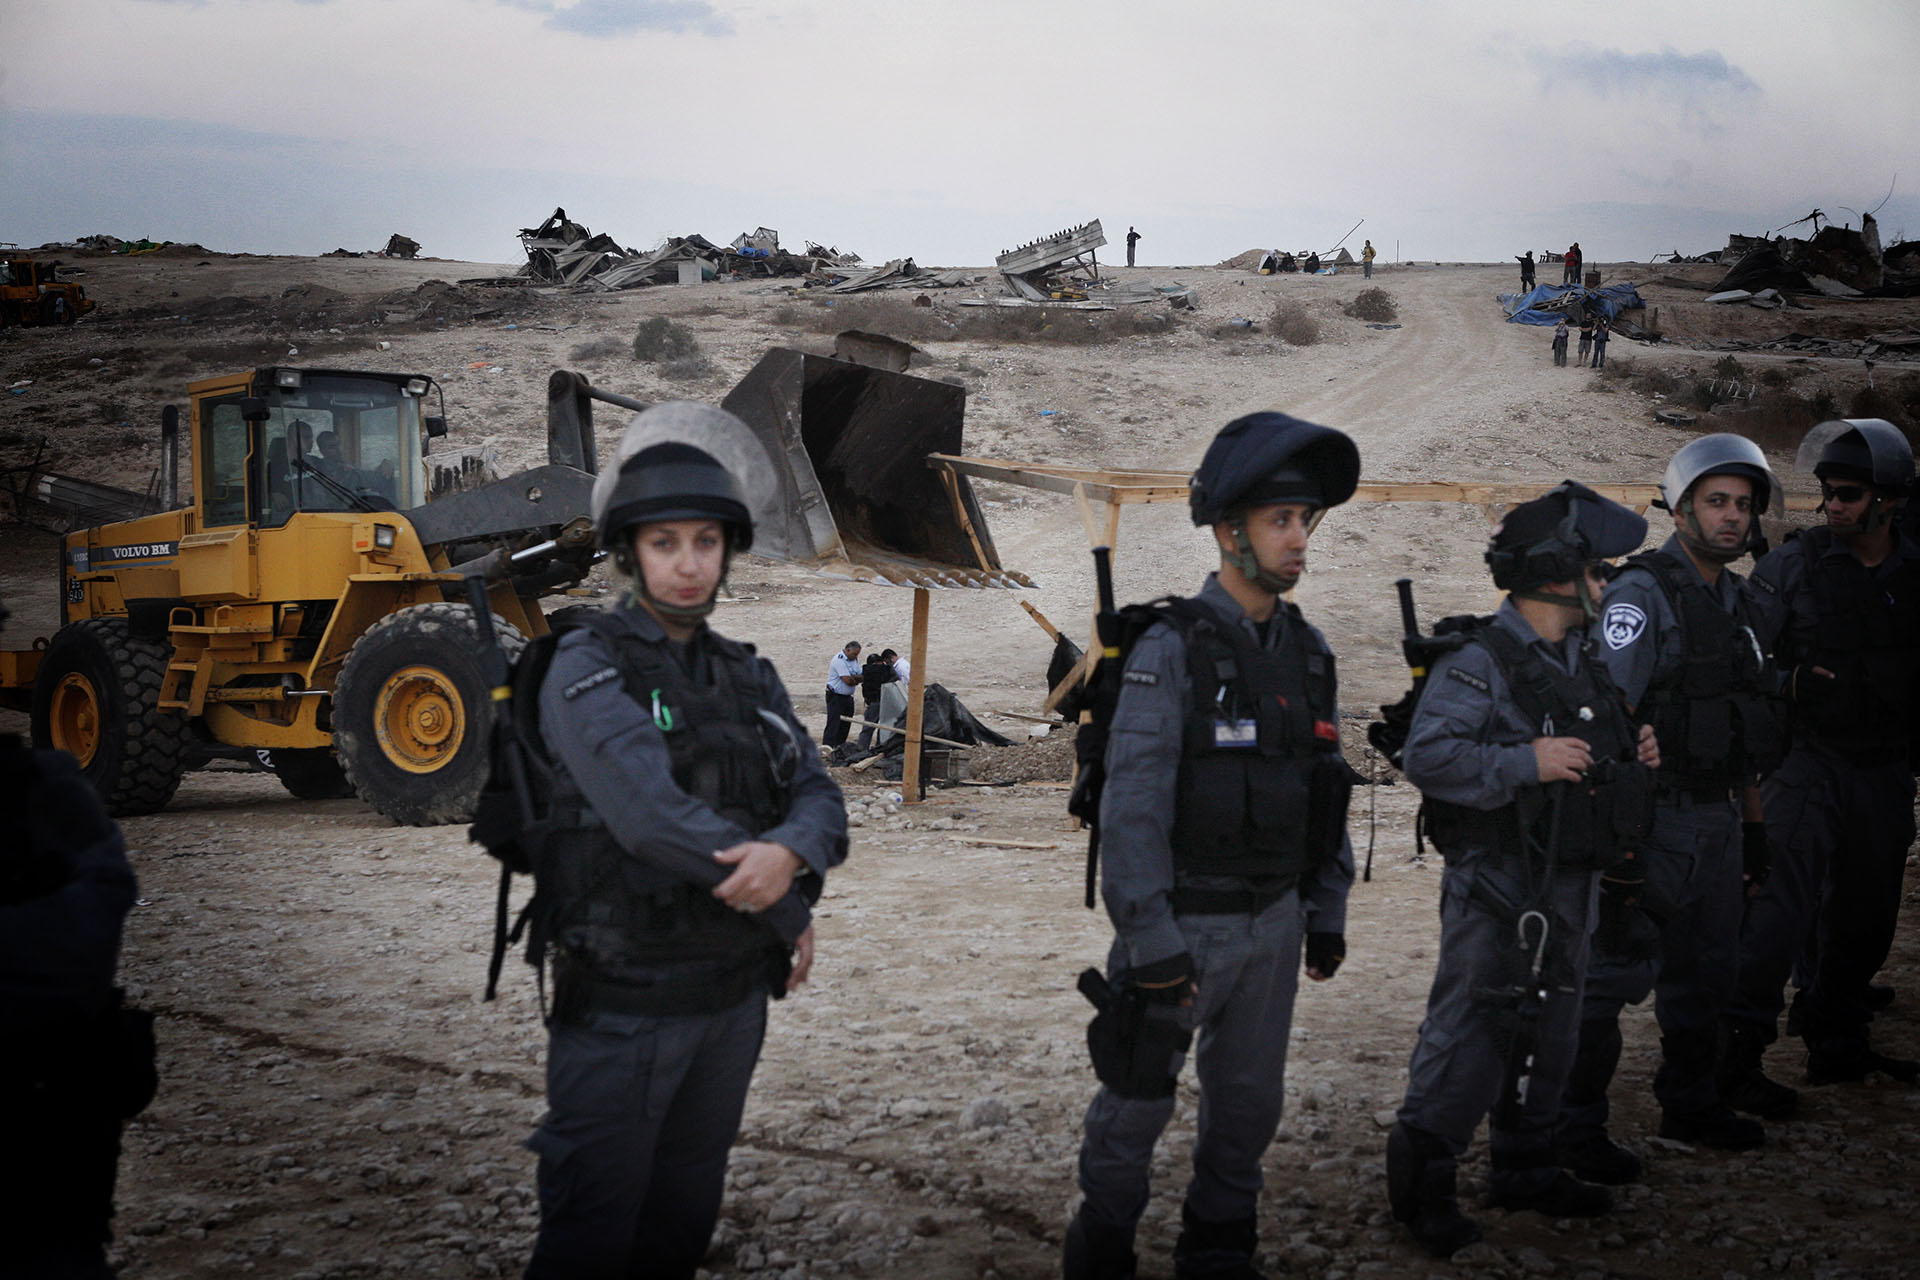 Israeli police officers escort bulldozers. Some of the demolitions turned violent with rubber bullets and tear gas shot on the villagers, who reported a variety of injuries. September 2010